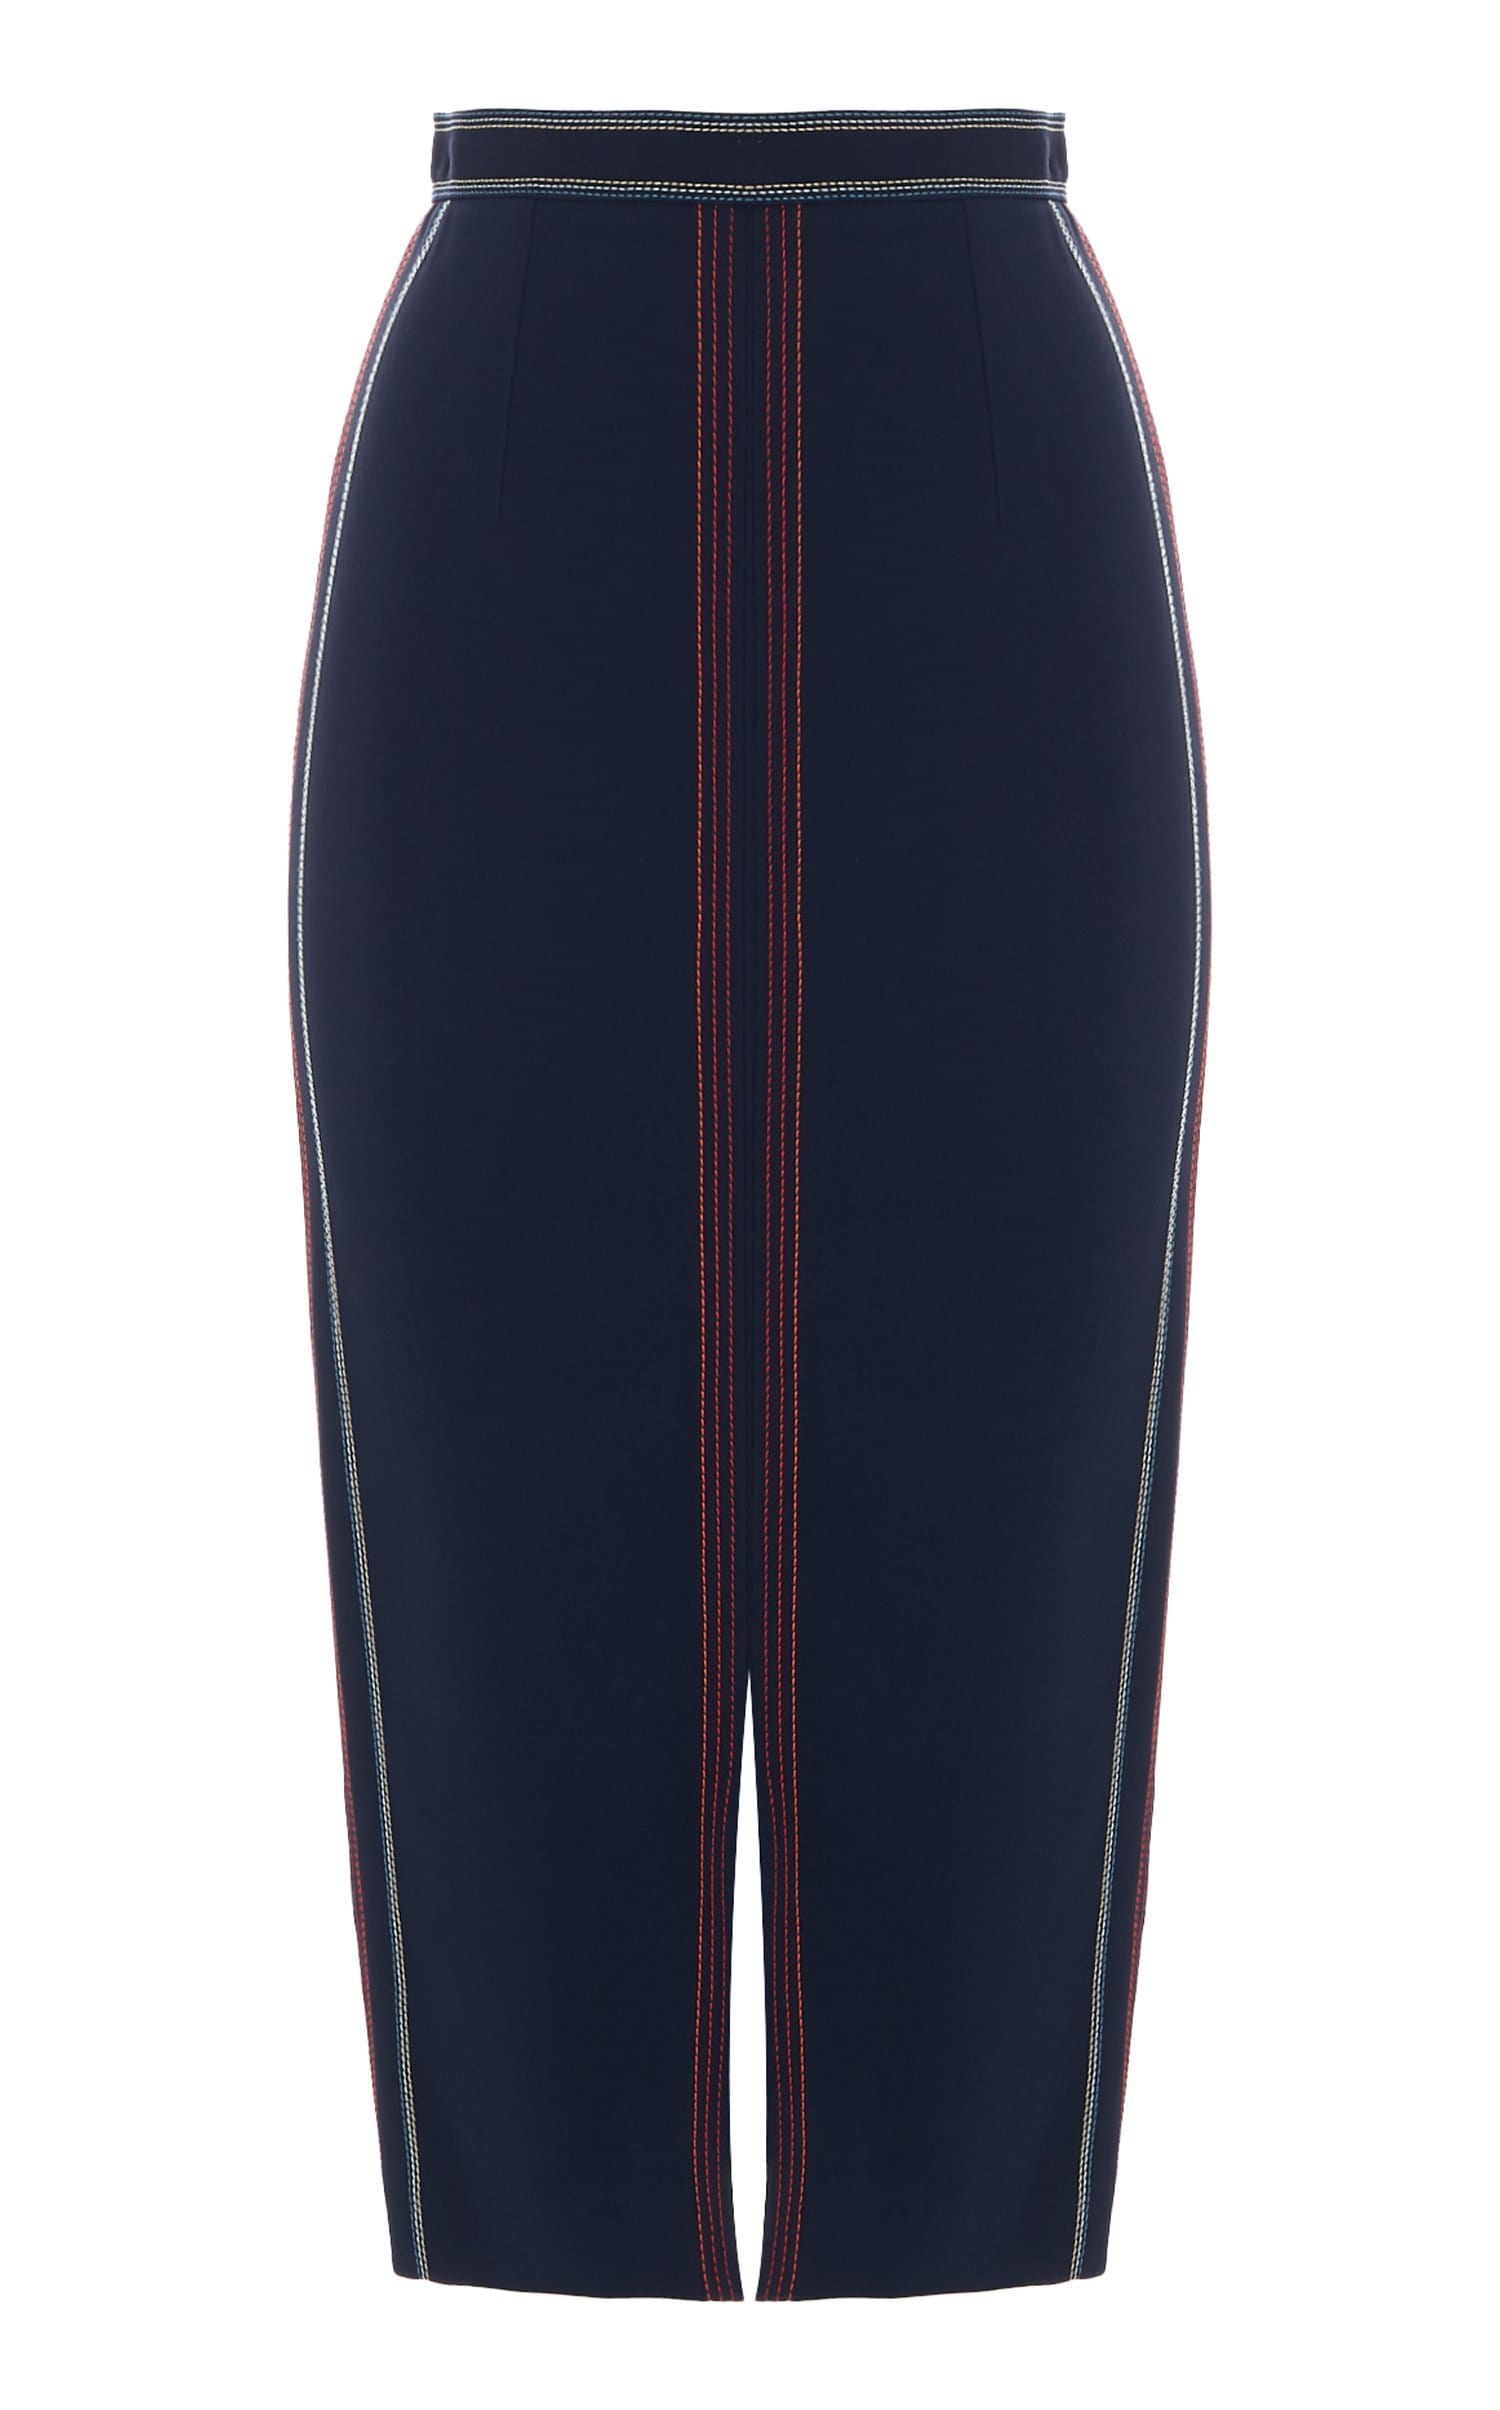 Tracy Skirt In Navy Multi from Roland Mouret